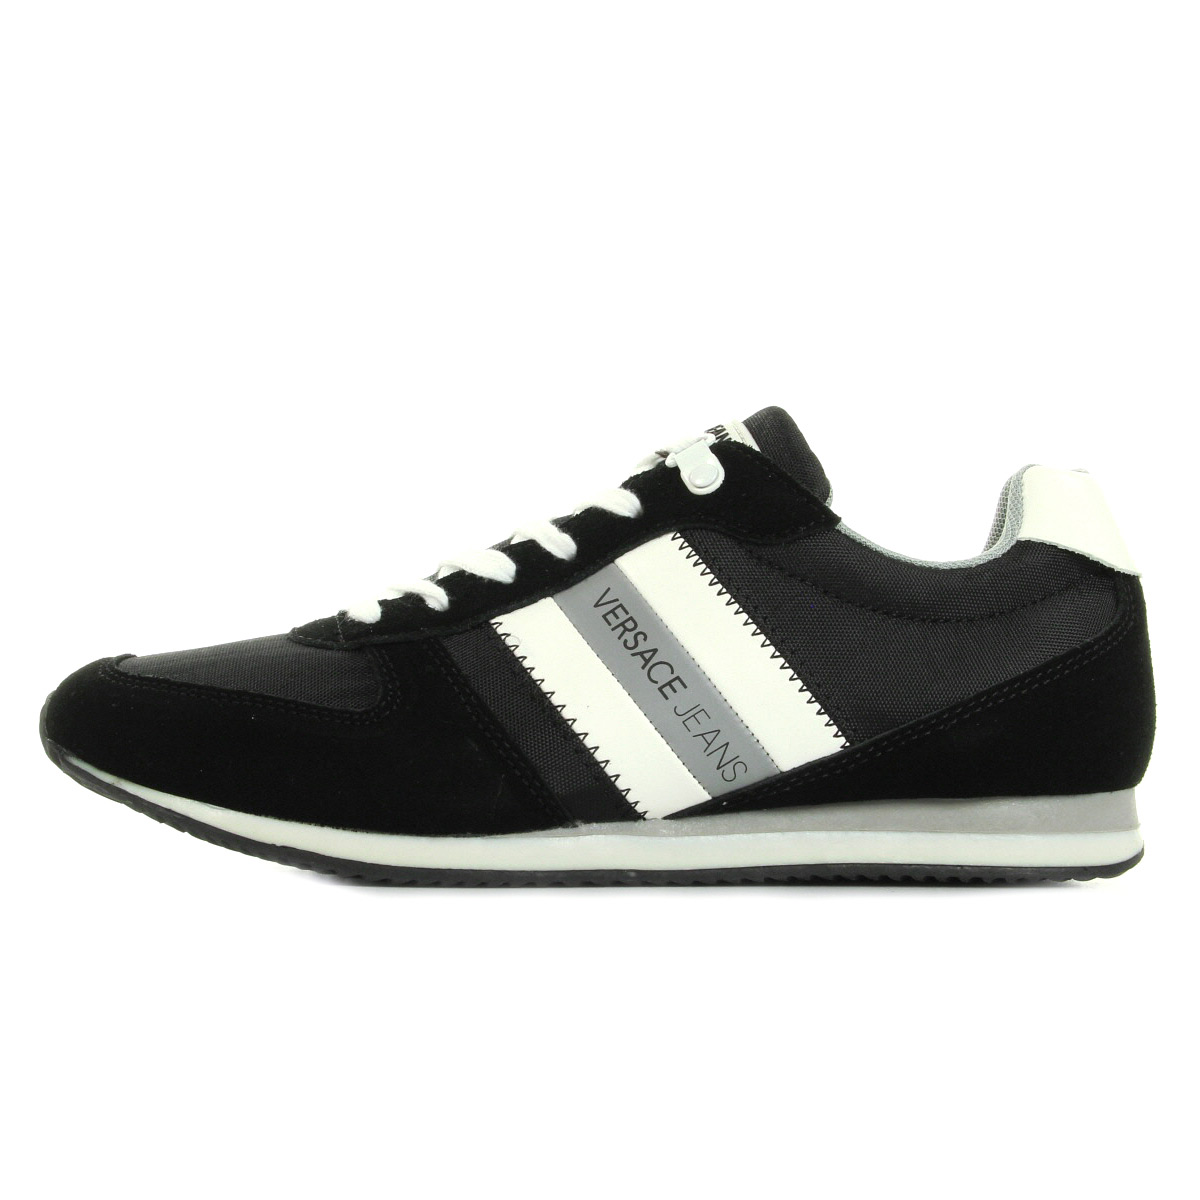 chaussures baskets versace jeans homme sneaker uomo disa3 suede nylon taille ebay. Black Bedroom Furniture Sets. Home Design Ideas